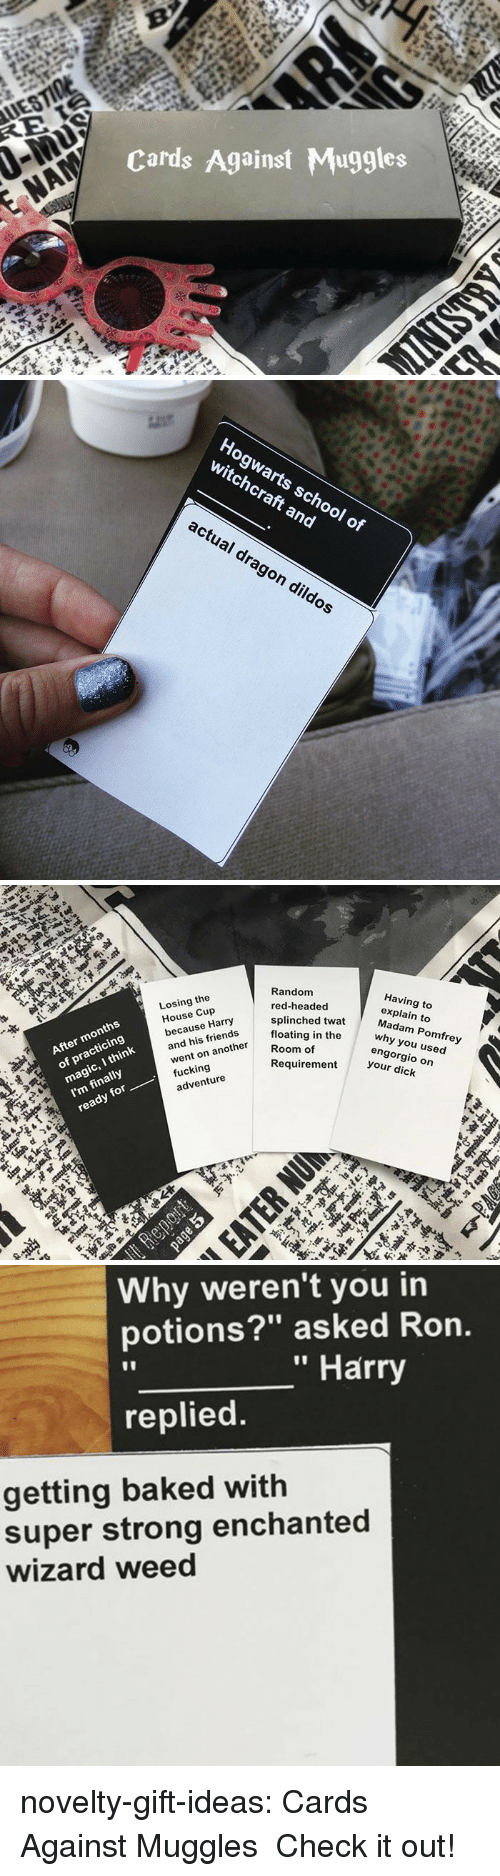 """Baked, Friends, and Fucking: Cards Against Muggles   Hogwarts school o  witchcraft and  actual drag  on dildos   Random  red-headed  splinched twat  floating in the  Losing the  House Cup  because Harry  and his friends  went on another  fucking  Having to  explain to  After months  Madam Pomfrey  magic, I think  I'm finally  ready for  of practicing  Room of  why you used  engorgio on  your dick  Requirement  adventure   Why weren't you in  potions?"""" asked Ron.  """" Harry  replied  getting baked with  super strong enchanted  wizard weed novelty-gift-ideas:  Cards Against Muggles Check it out!"""